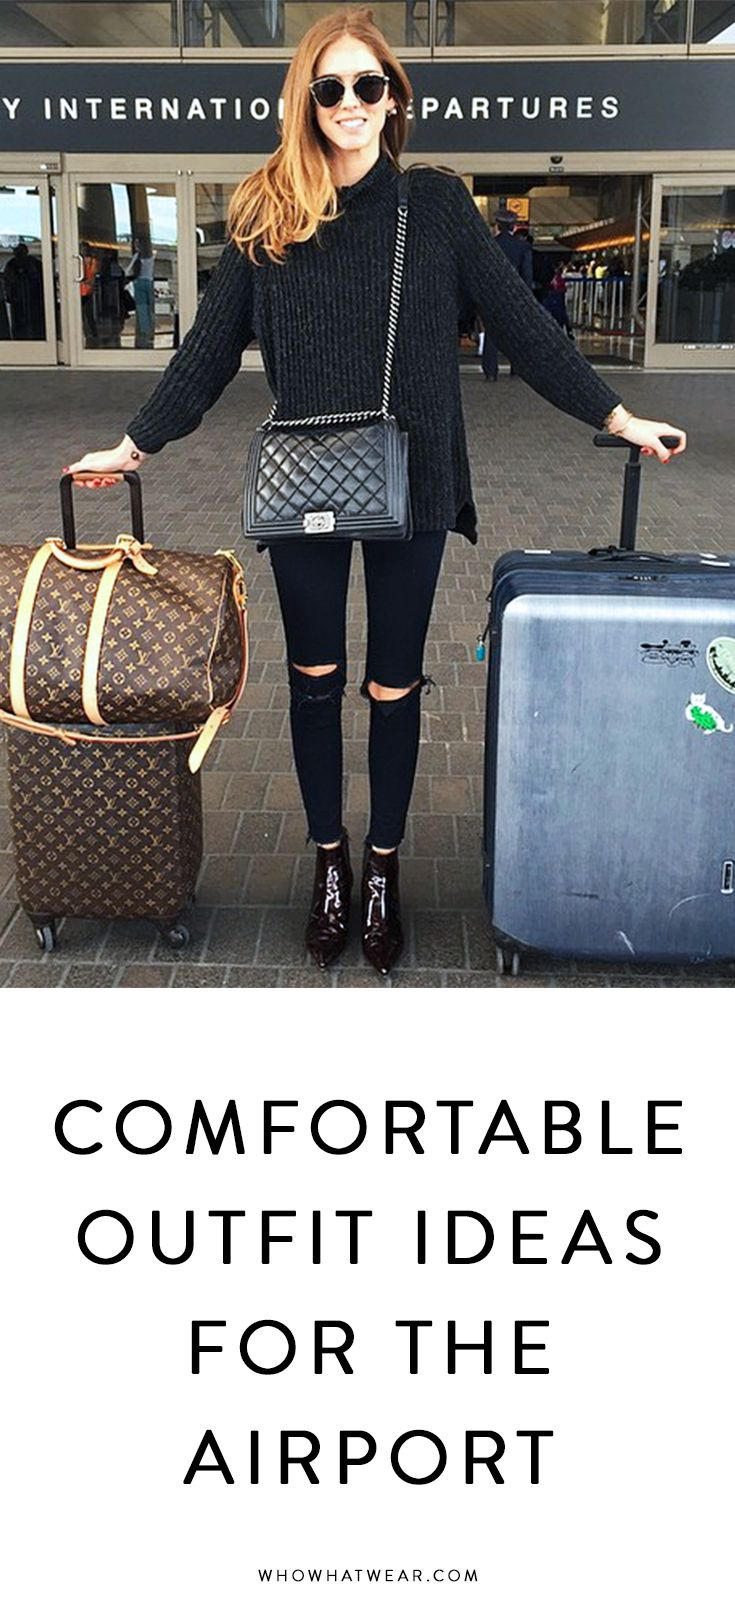 The most comfortable clothes to wear to the airport and travel in